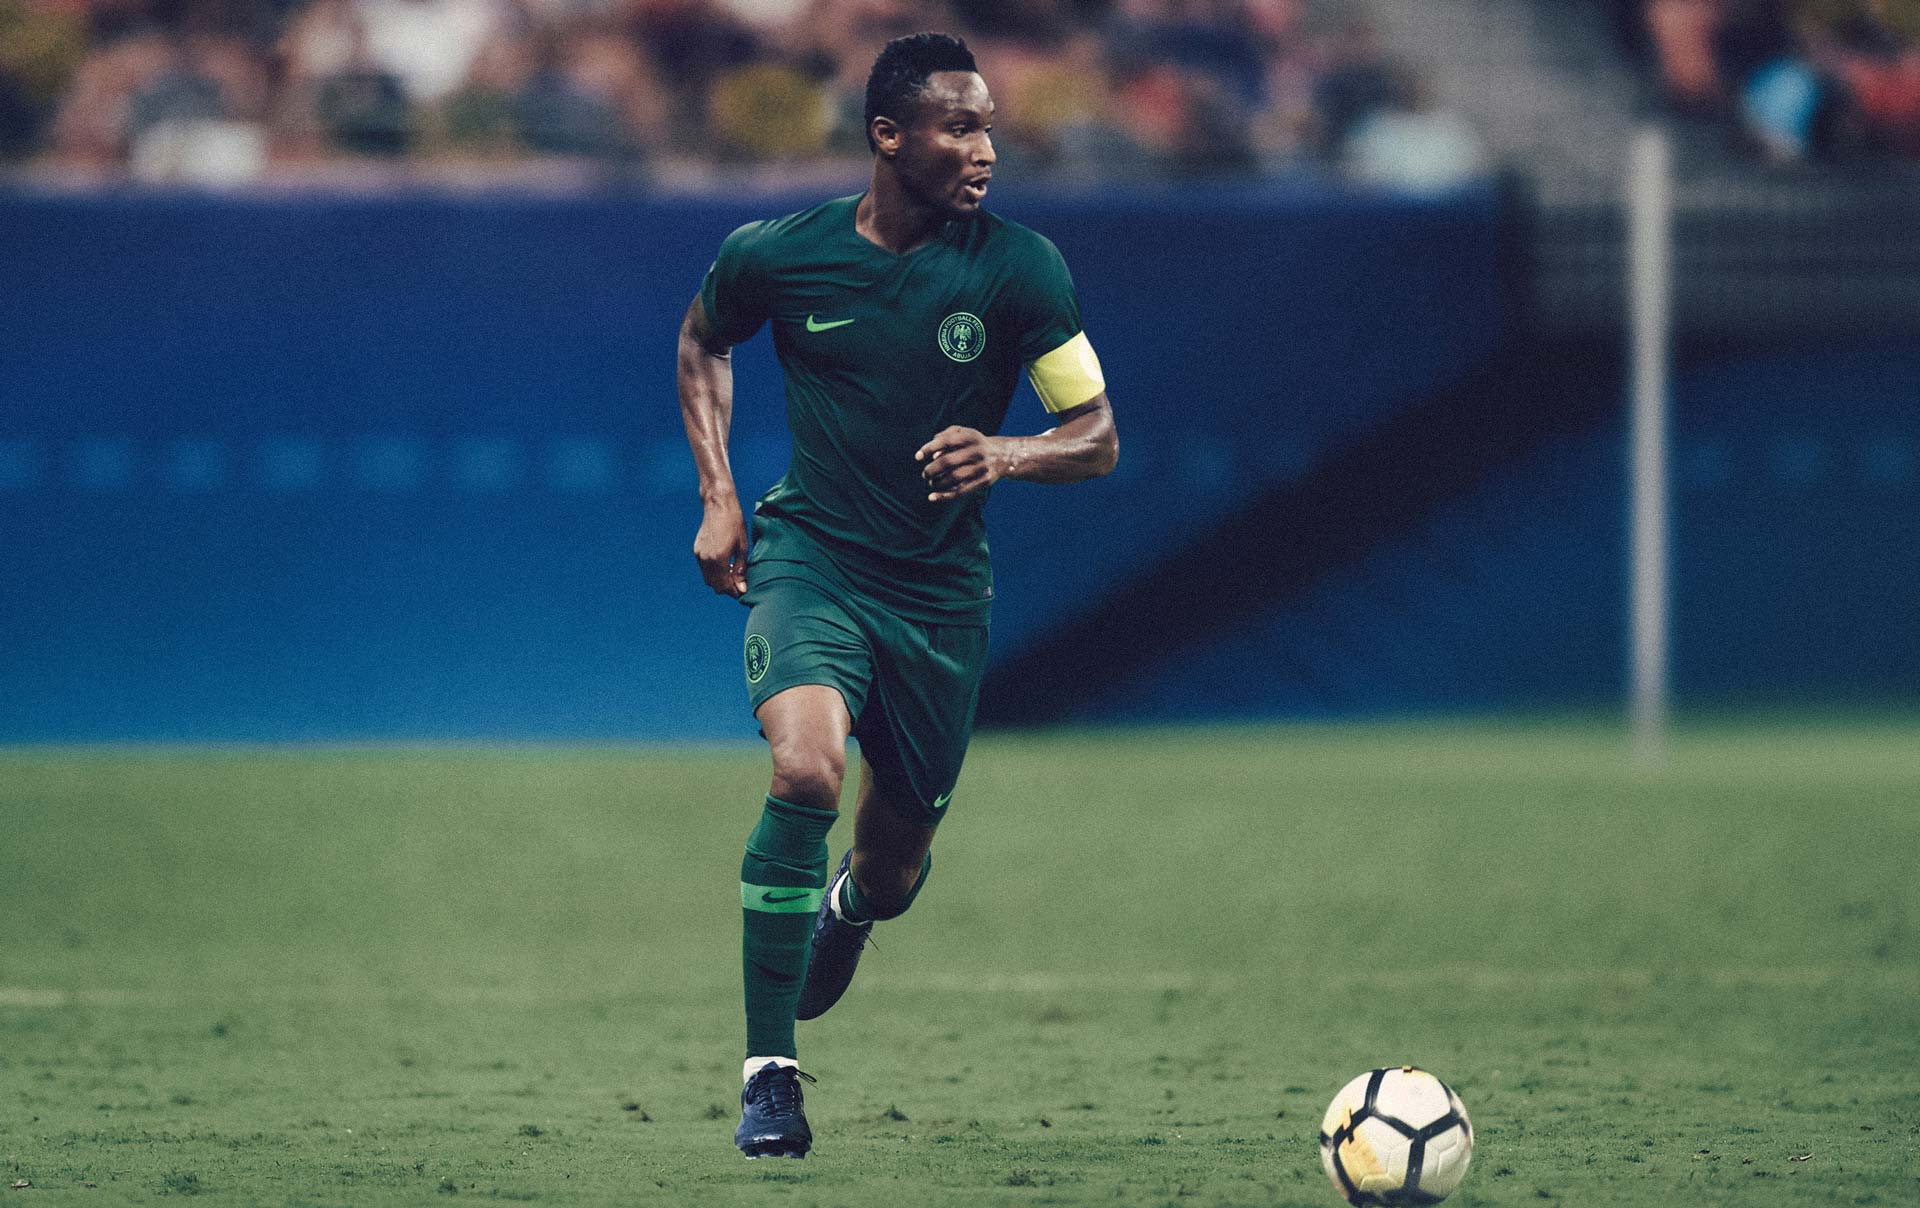 Jon Obi Mikel NAIJA Nigeria World Cup Nike Kits Jerseys Collection Matthew Wolff Design 2018 Super Eagles Away